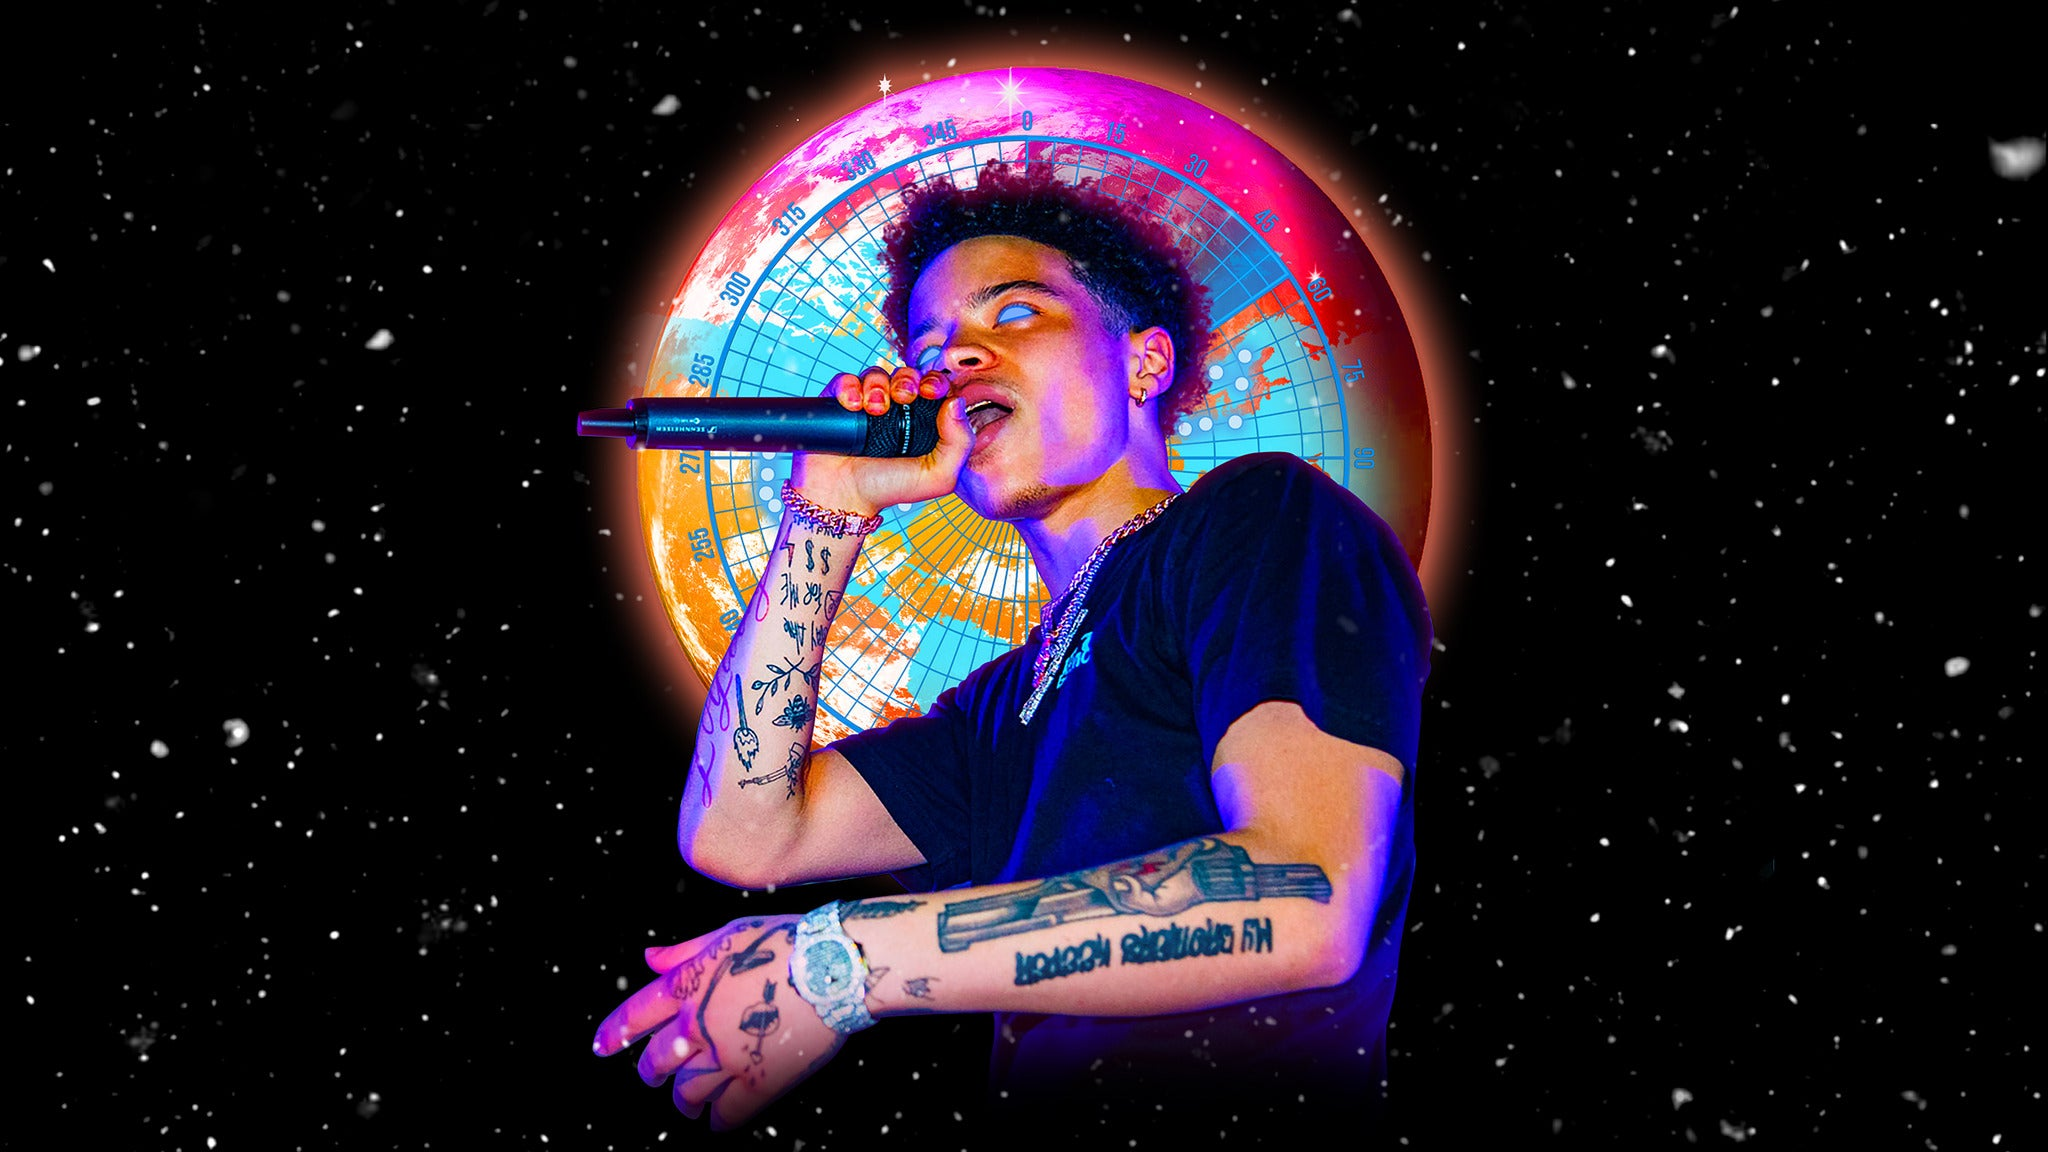 Lil Mosey: Certified Hitmaker North American Tour 2020 - New Haven, CT 06511